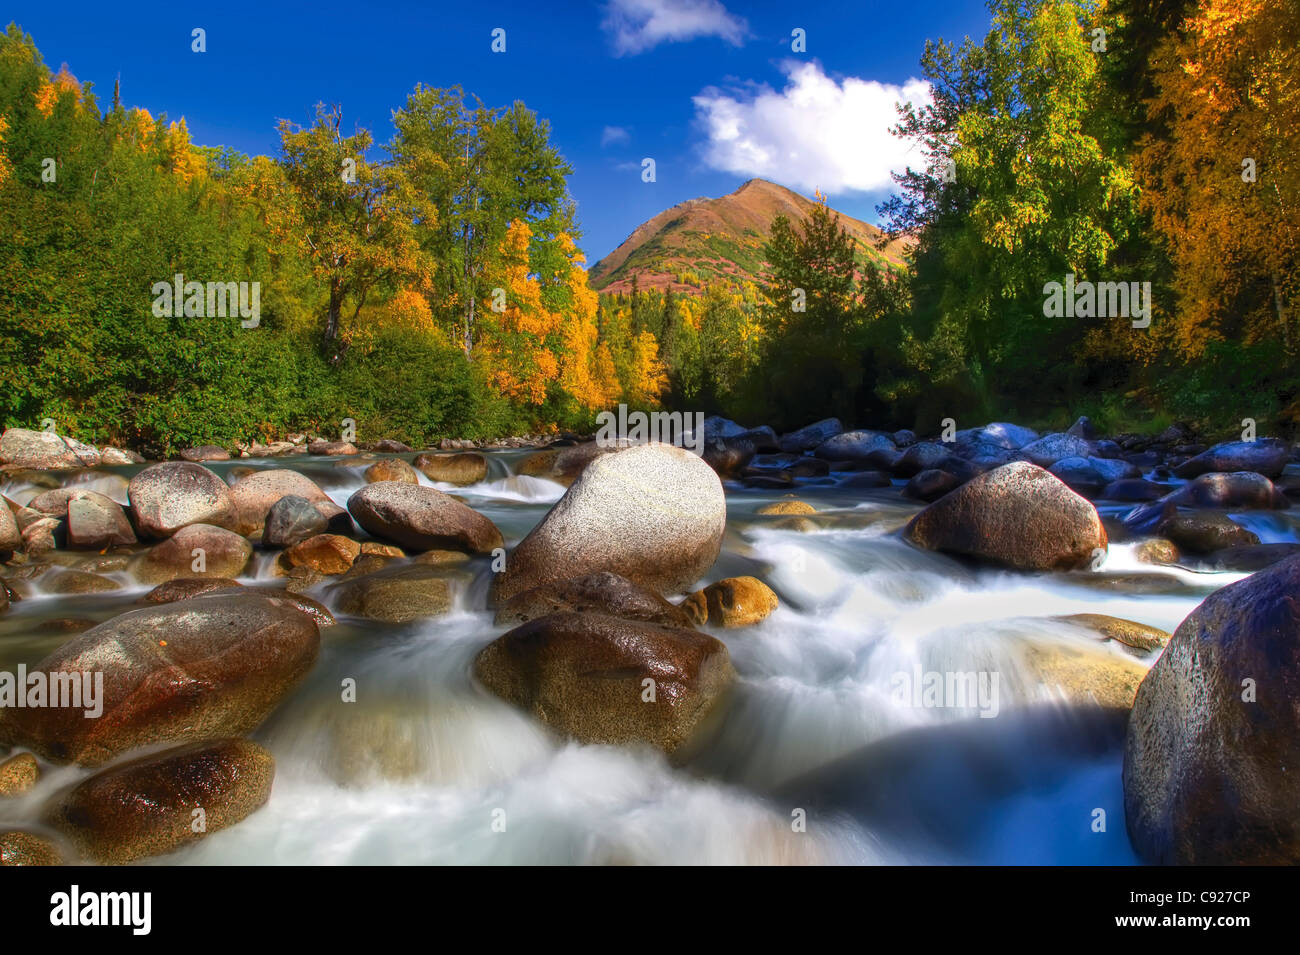 Low angle view of water rushing over rocks in Little Susitna River  Hatcher Pass, Southcentral Alaska - Stock Image